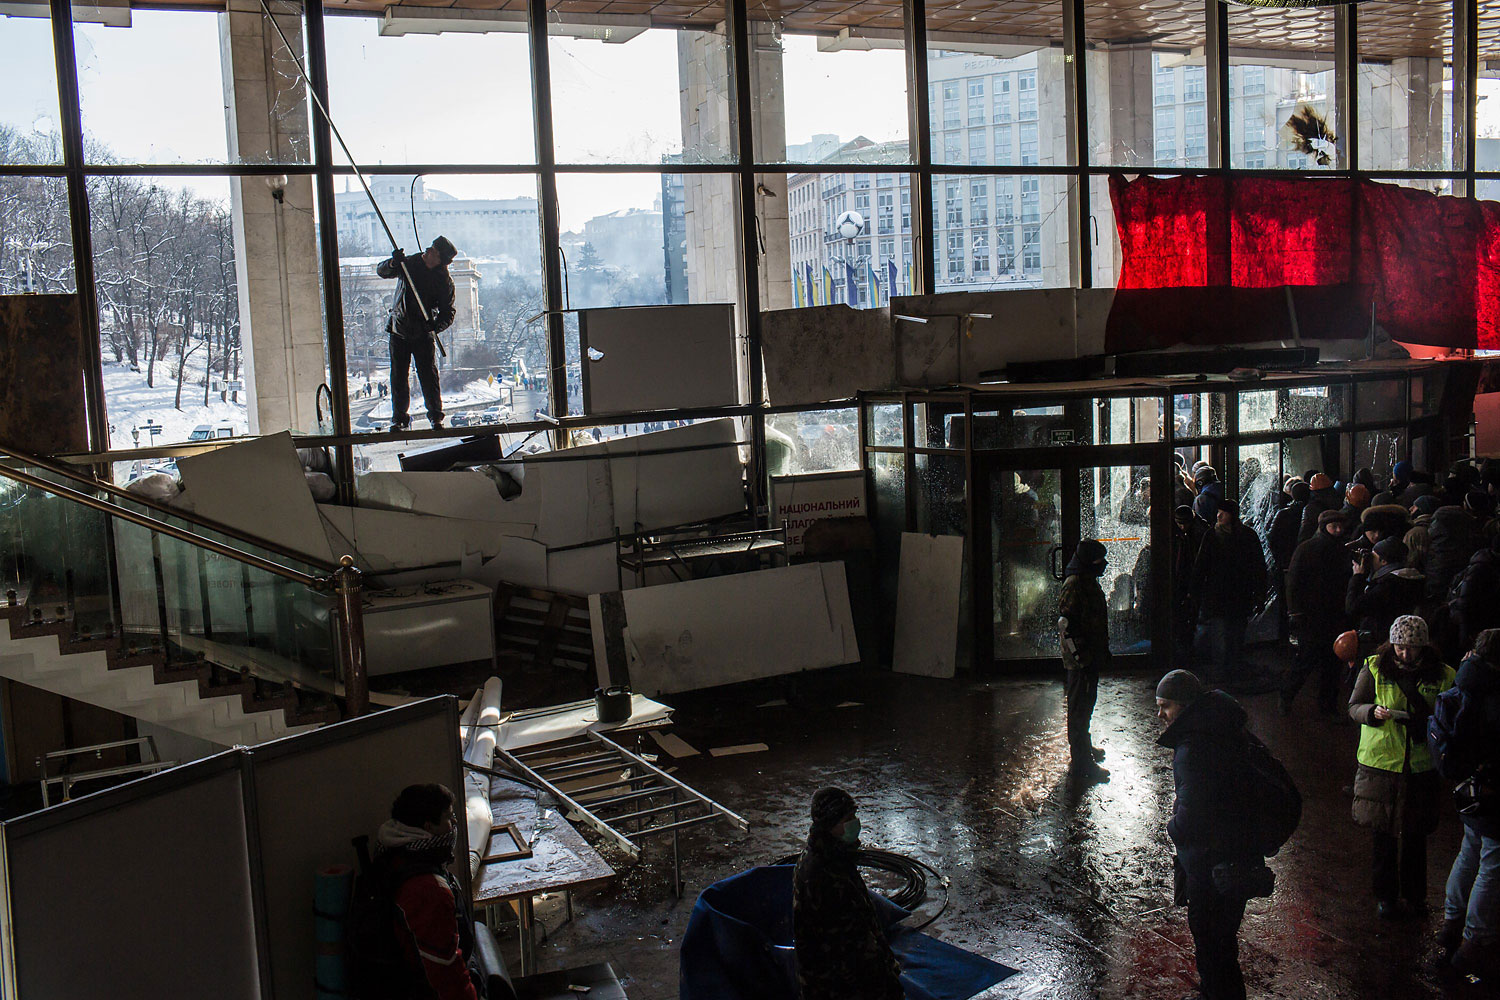 A man uses a pole to remove the remains of broken windows at Ukrainian House, which was taken over by anti-government protesters on Jan. 26, 2014 in Kiev.